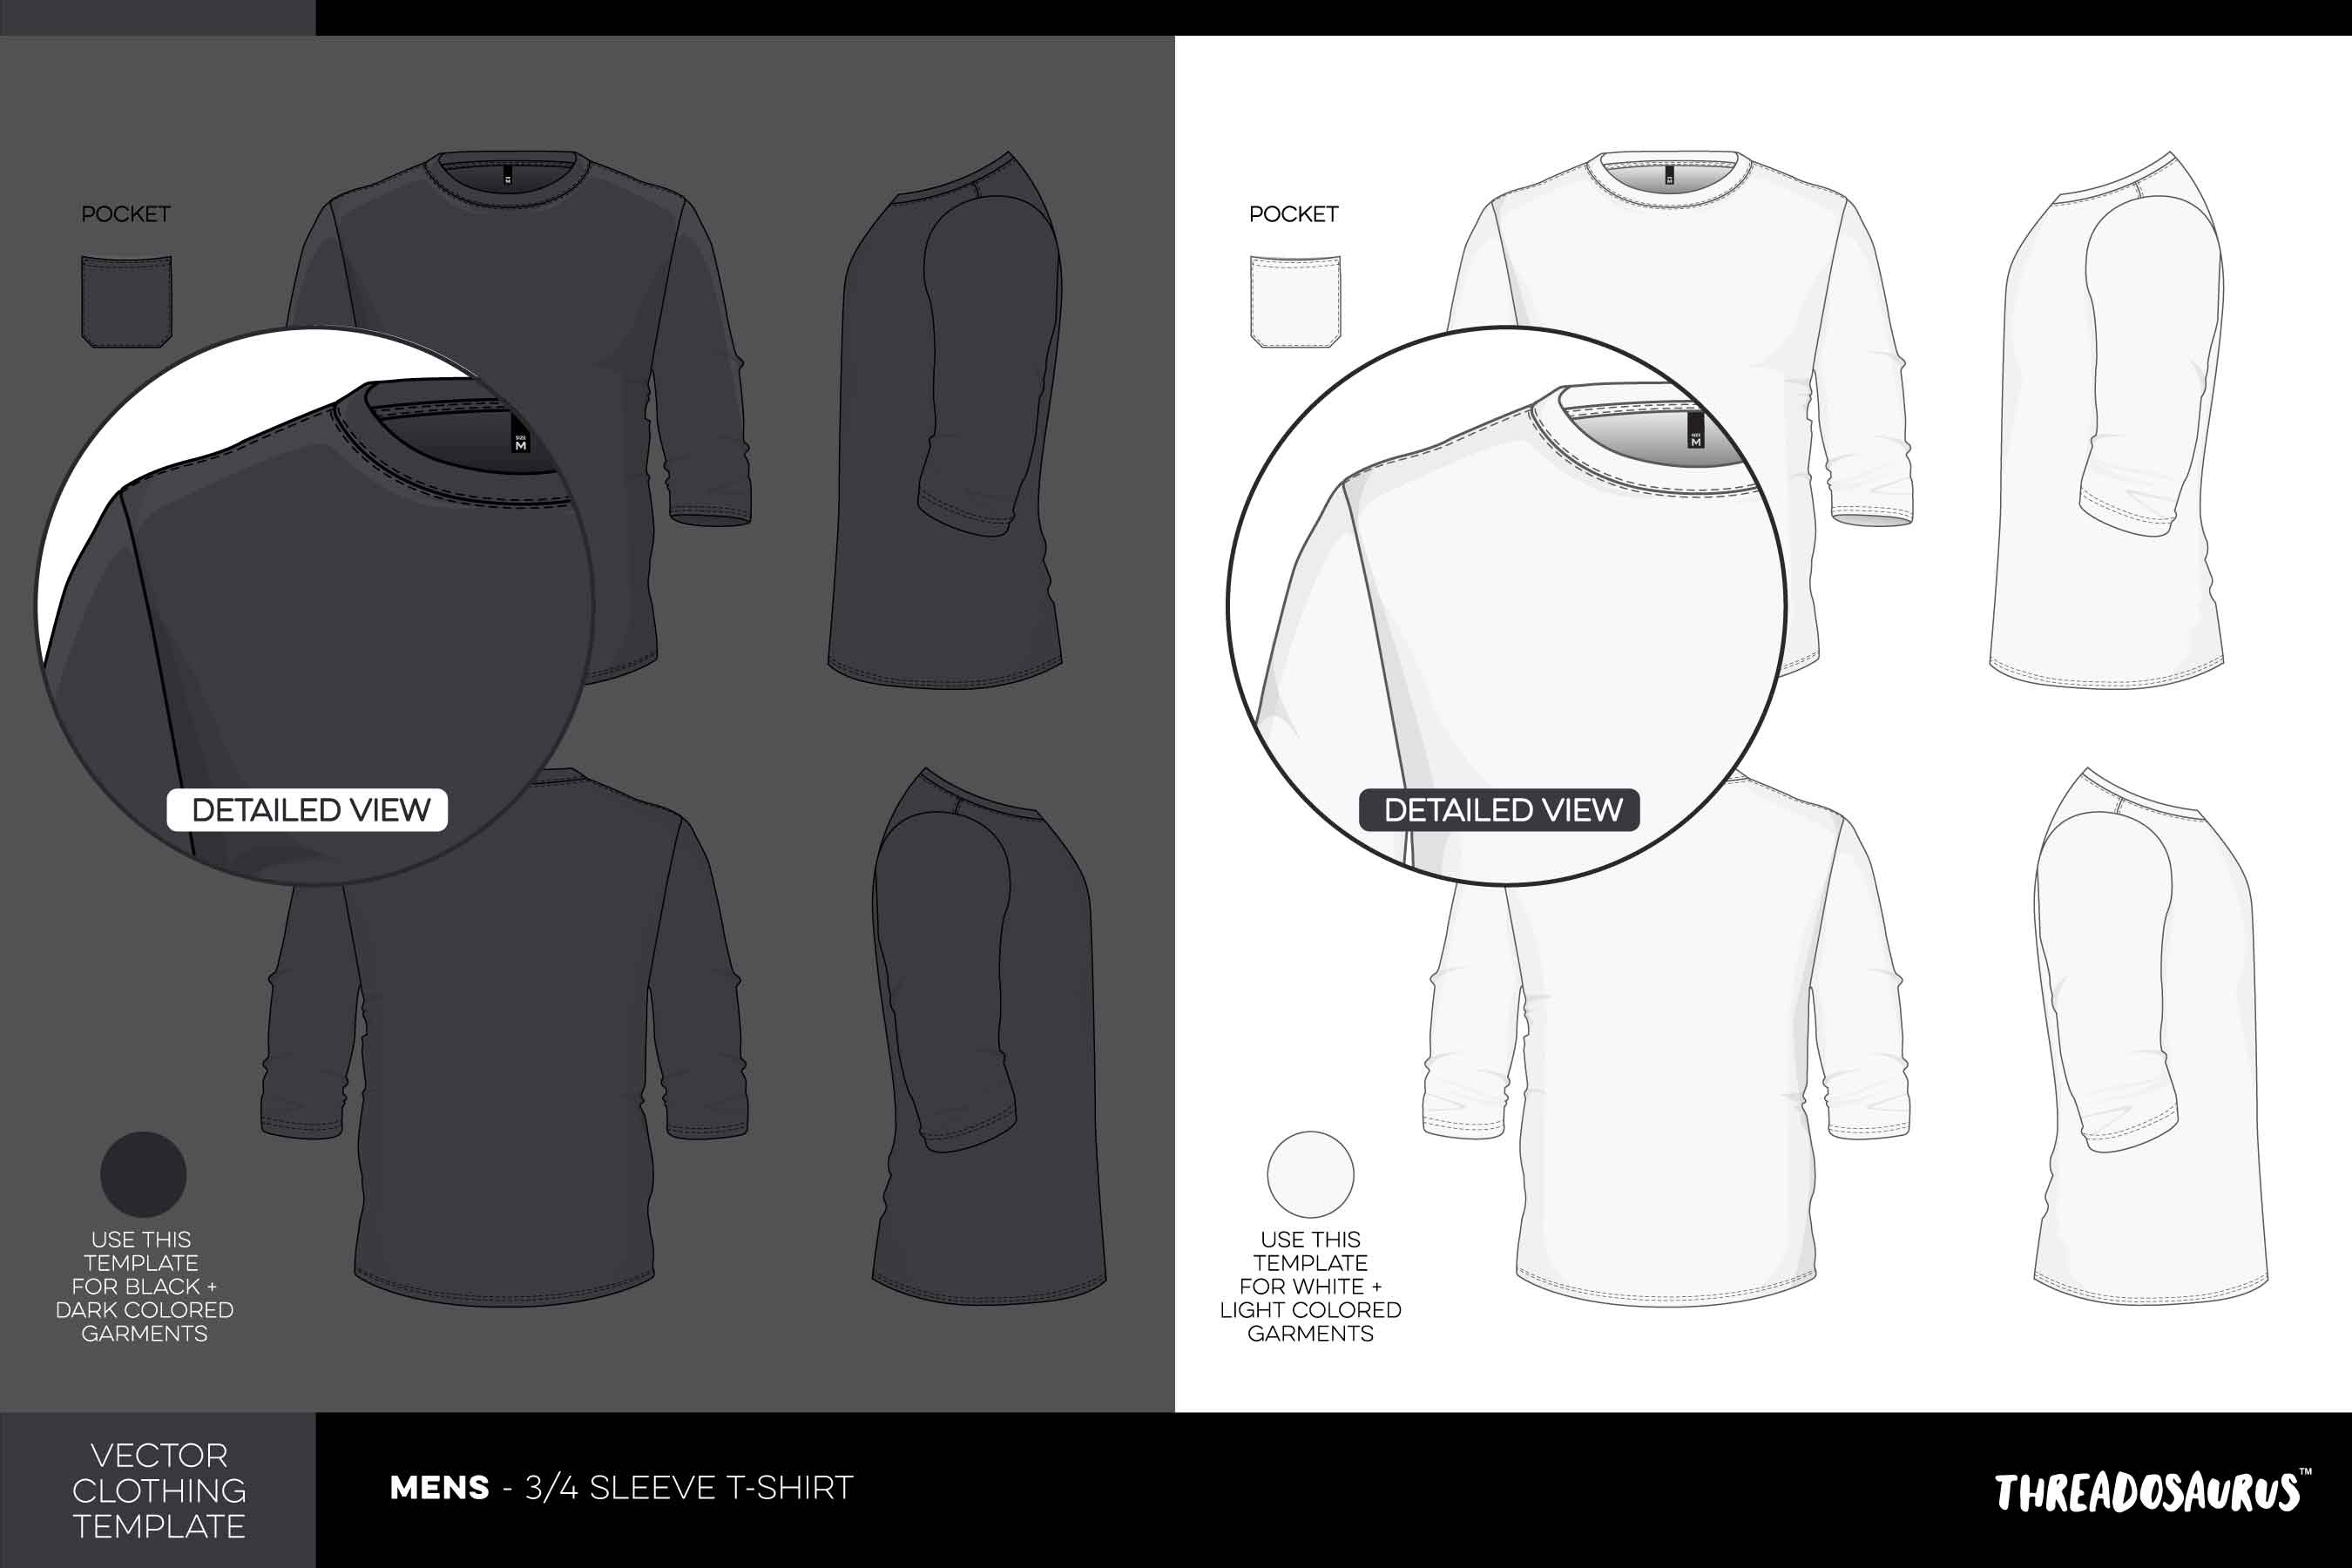 Mens 3/4 sleeve t-shirt template vector pack